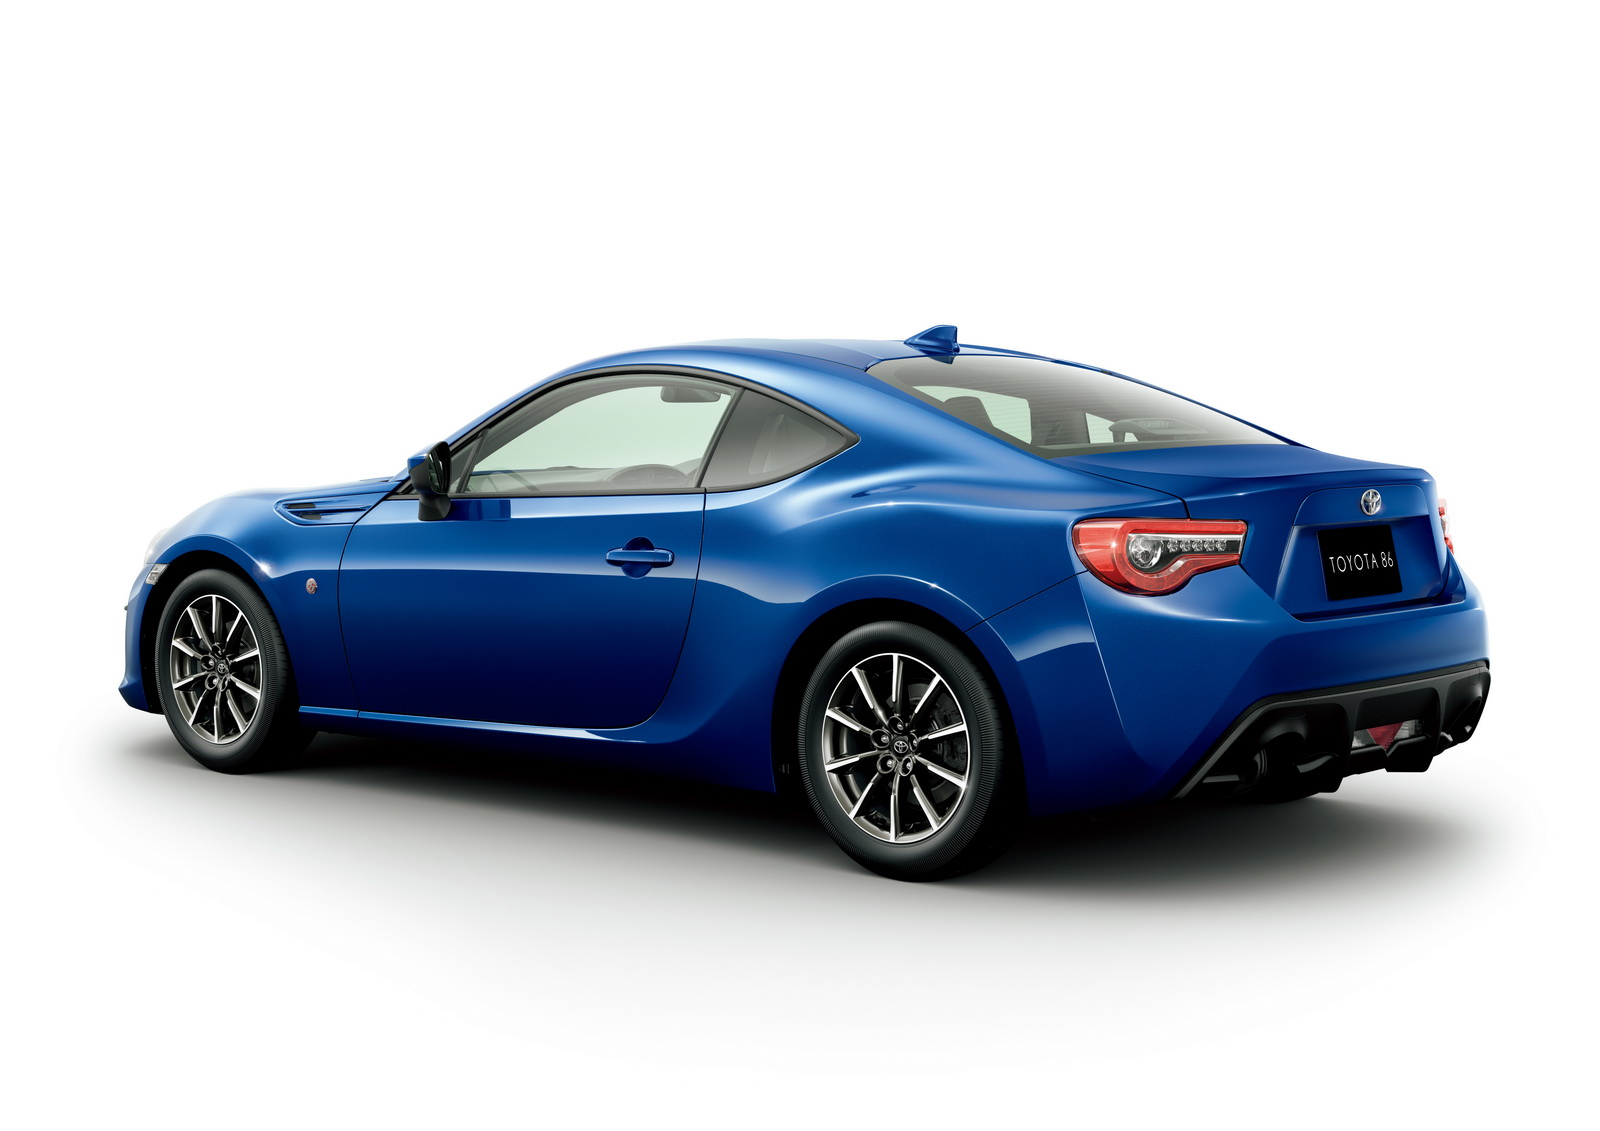 ... Toyota 86 2016 Toyota Gt86 Facelift Photo Gallery | 2017 - 2018